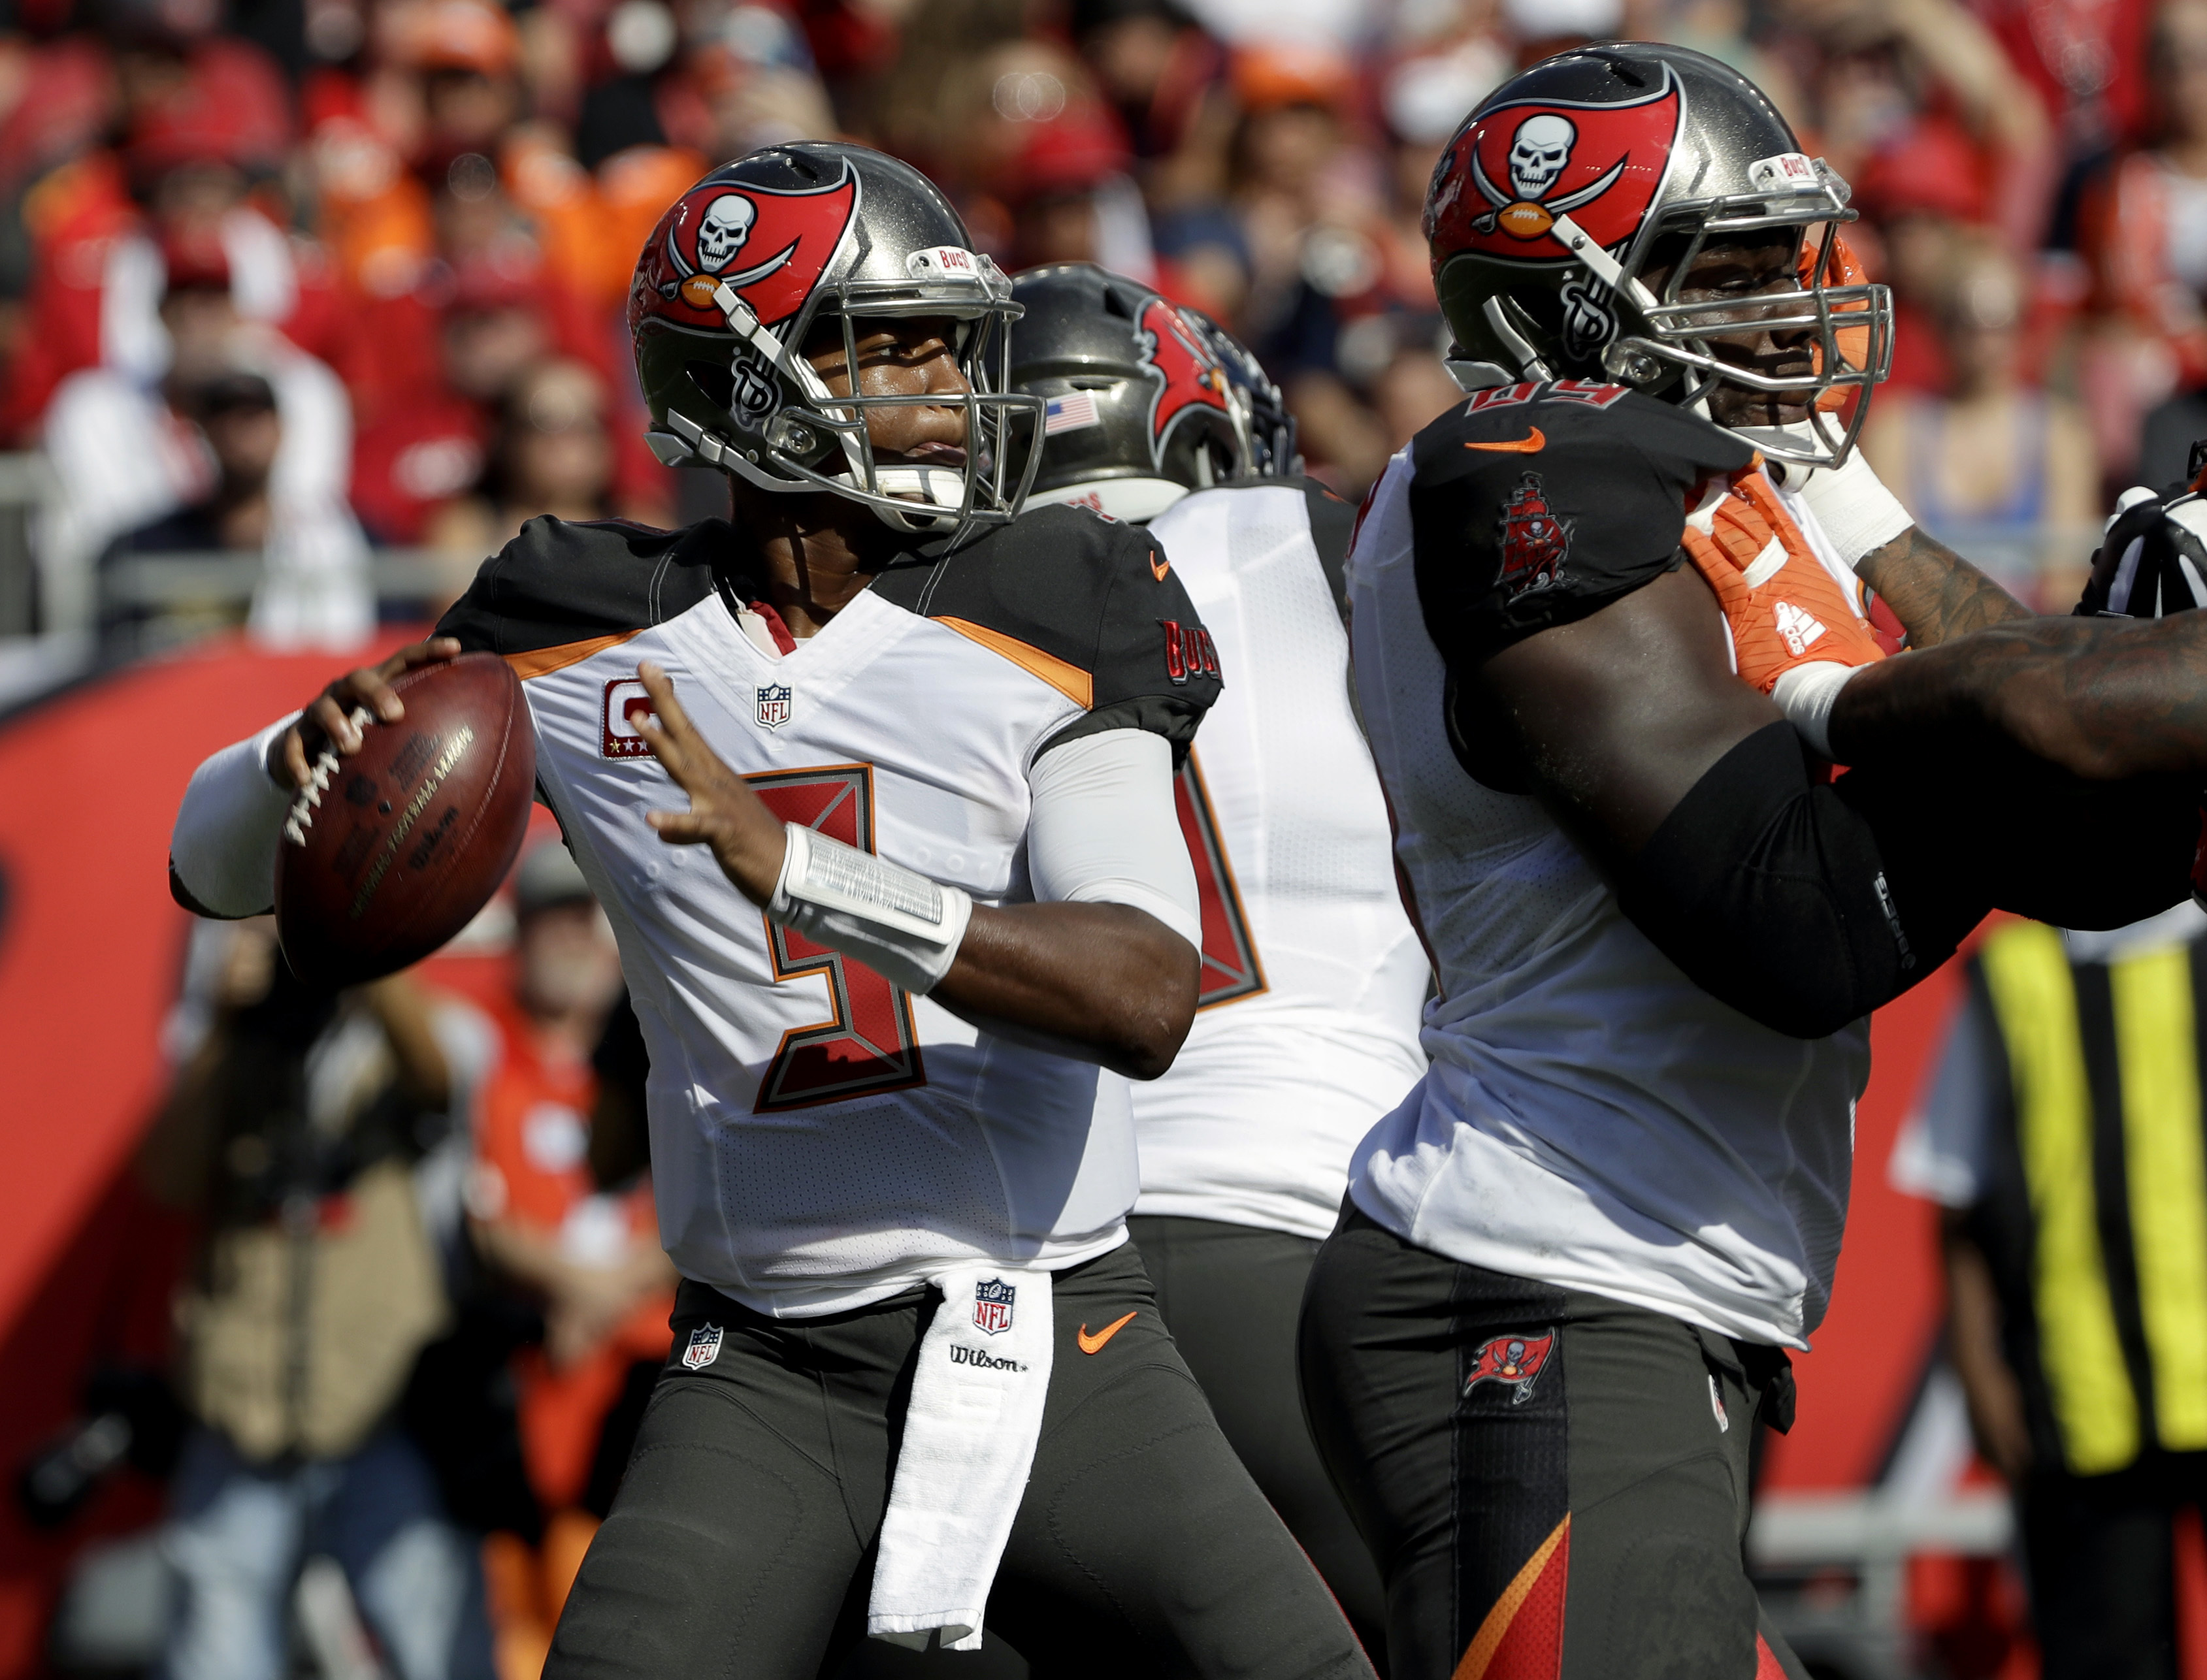 Tampa Bay Buccaneers quarterback Jameis Winston (3) throws a pass that eventually intercepted by Denver Broncos cornerback Aqib Talib during the first quarter of an NFL football game Sunday, Oct. 2, 2016, in Tampa, Fla. (AP Photo/Chris O'Meara)